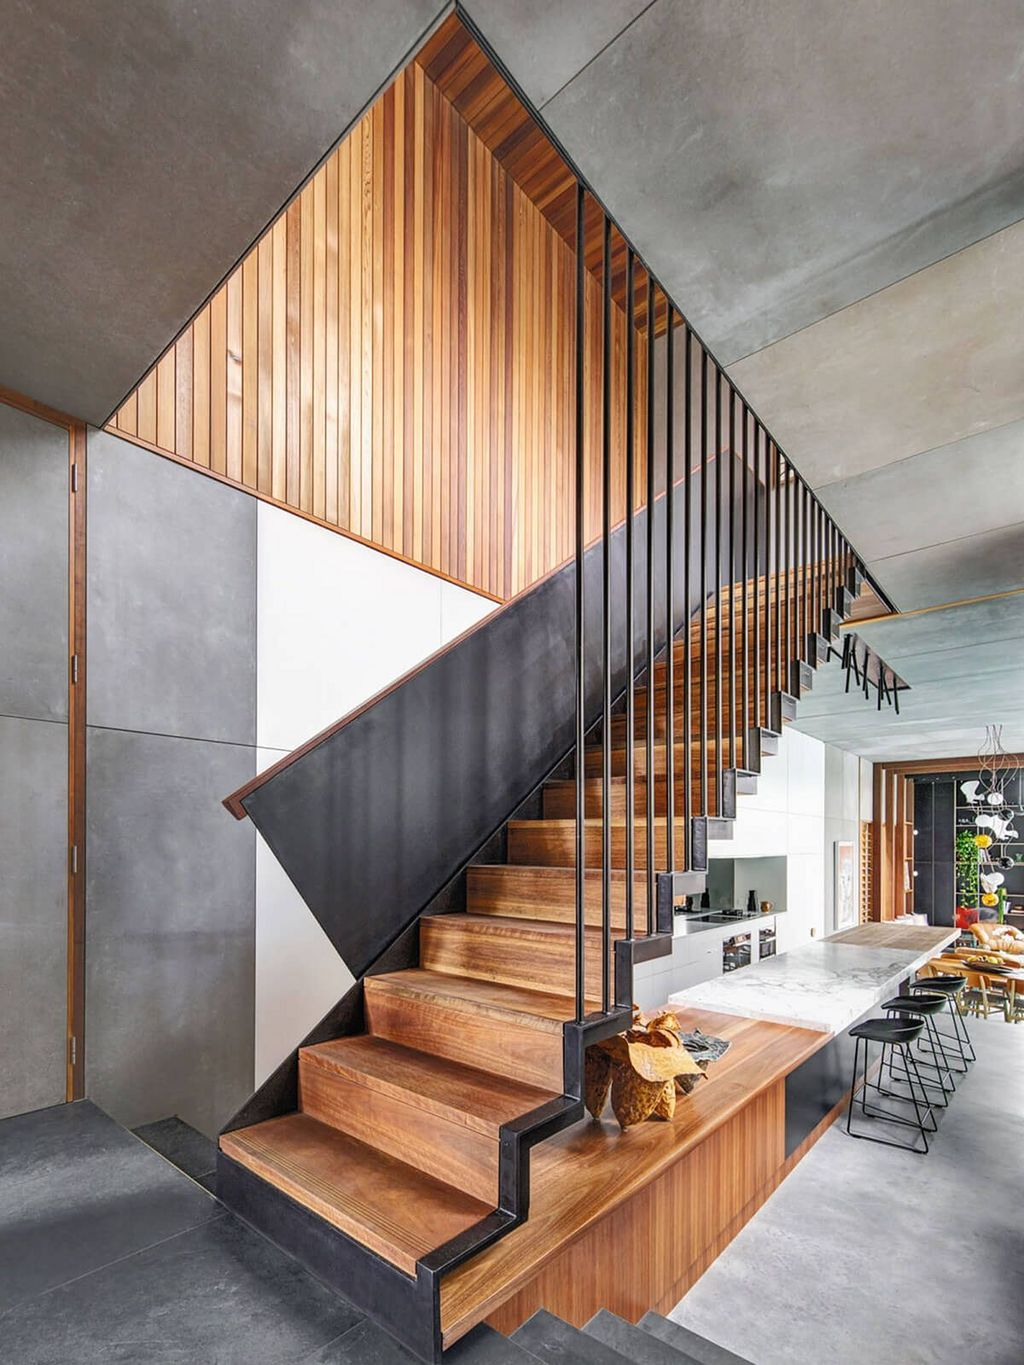 Stunning Wooden Stairs Design Ideas 07